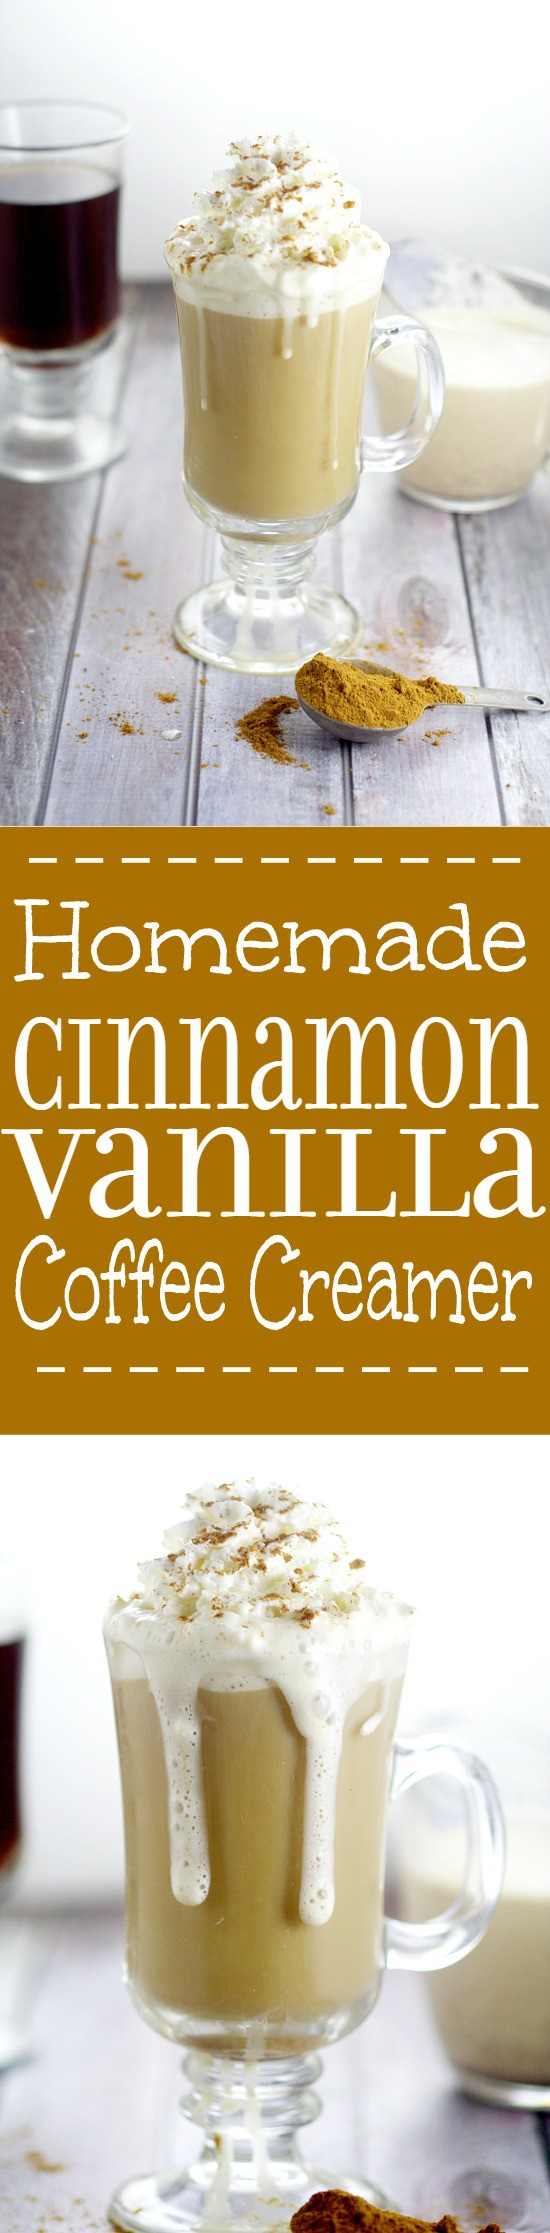 Homemade Cinnamon Vanilla Coffee Creamer recipe.  Frugal and delicious, this spiced, sweet Homemade Cinnamon Vanilla Coffee Creamer recipe will make you look forward to your morning coffee even more.